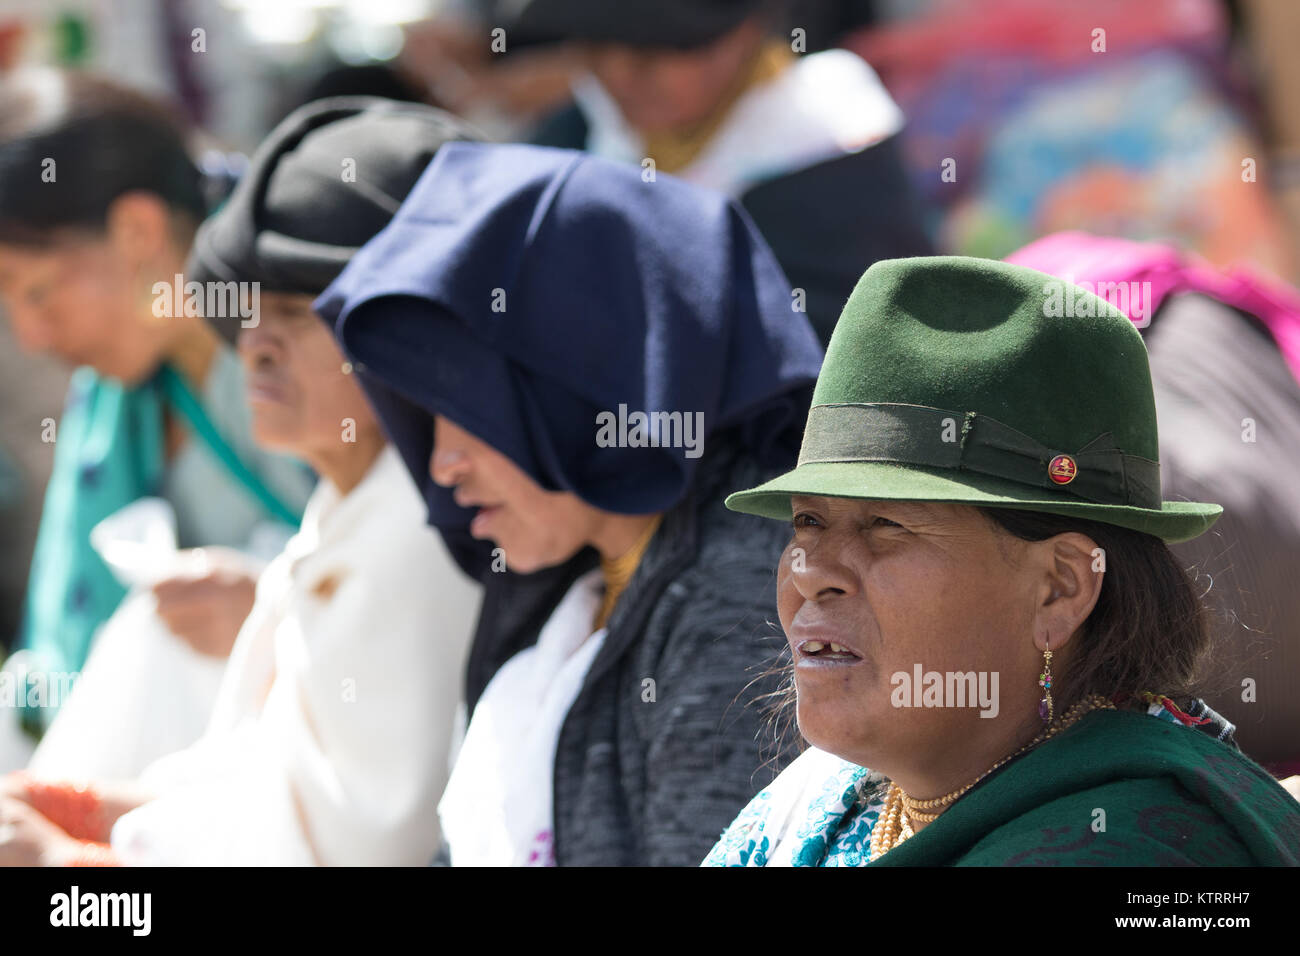 Otavalo, Ecuador-December 23, 2017: indigenous people sitting outdoors in the local market - Stock Image